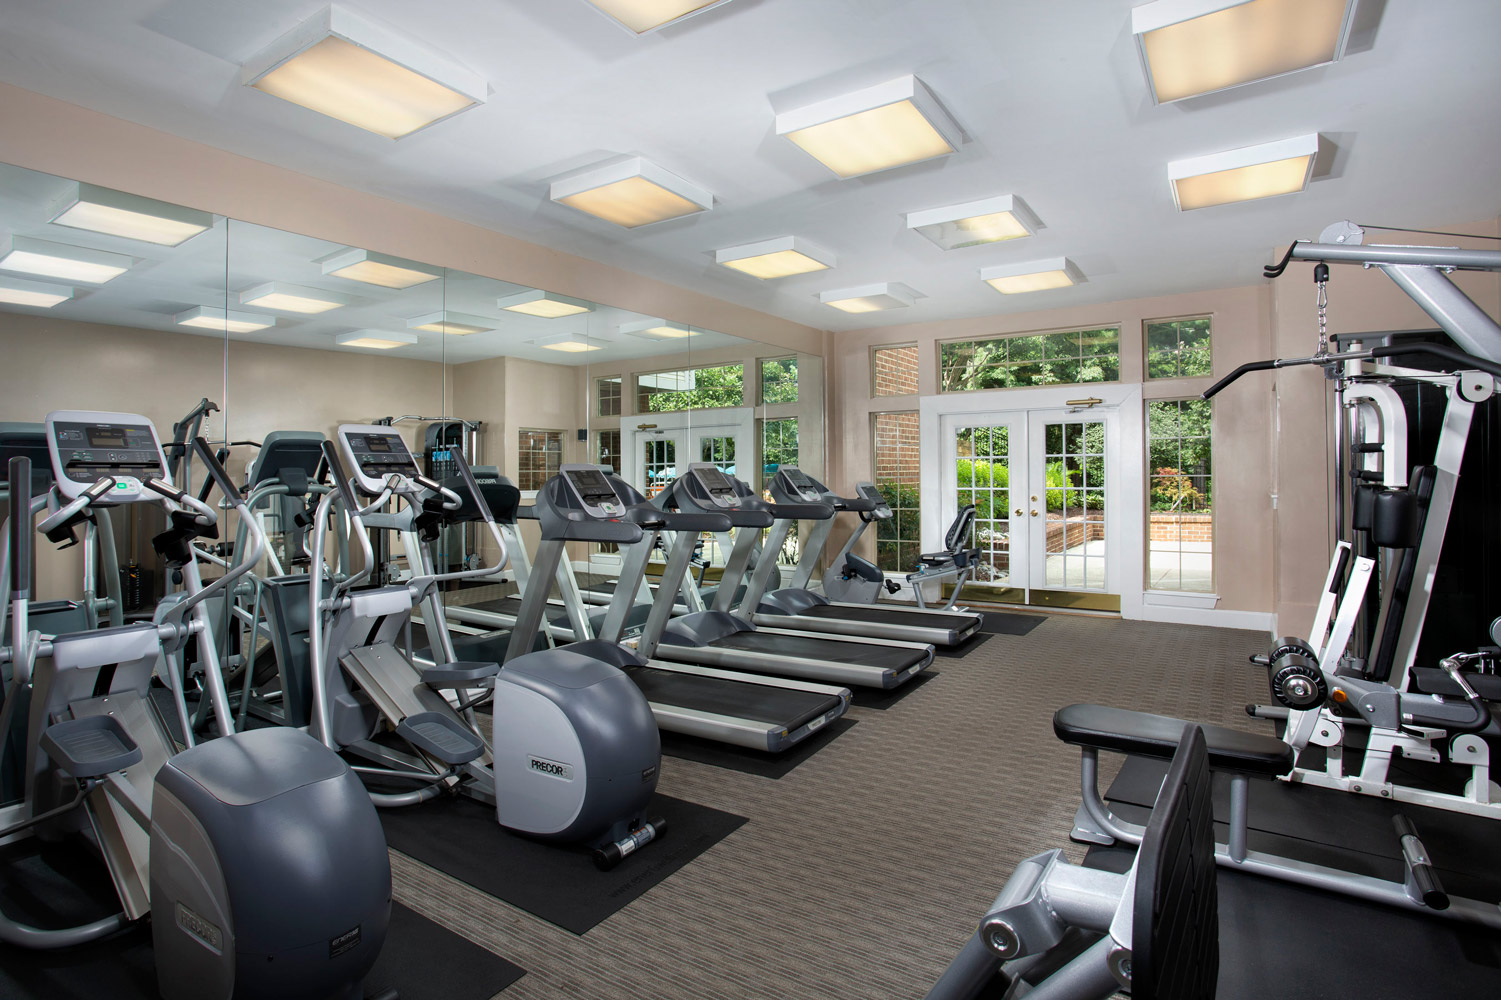 Fully-equipped fitness center at Seneca Club Apartments in Germantown, MD